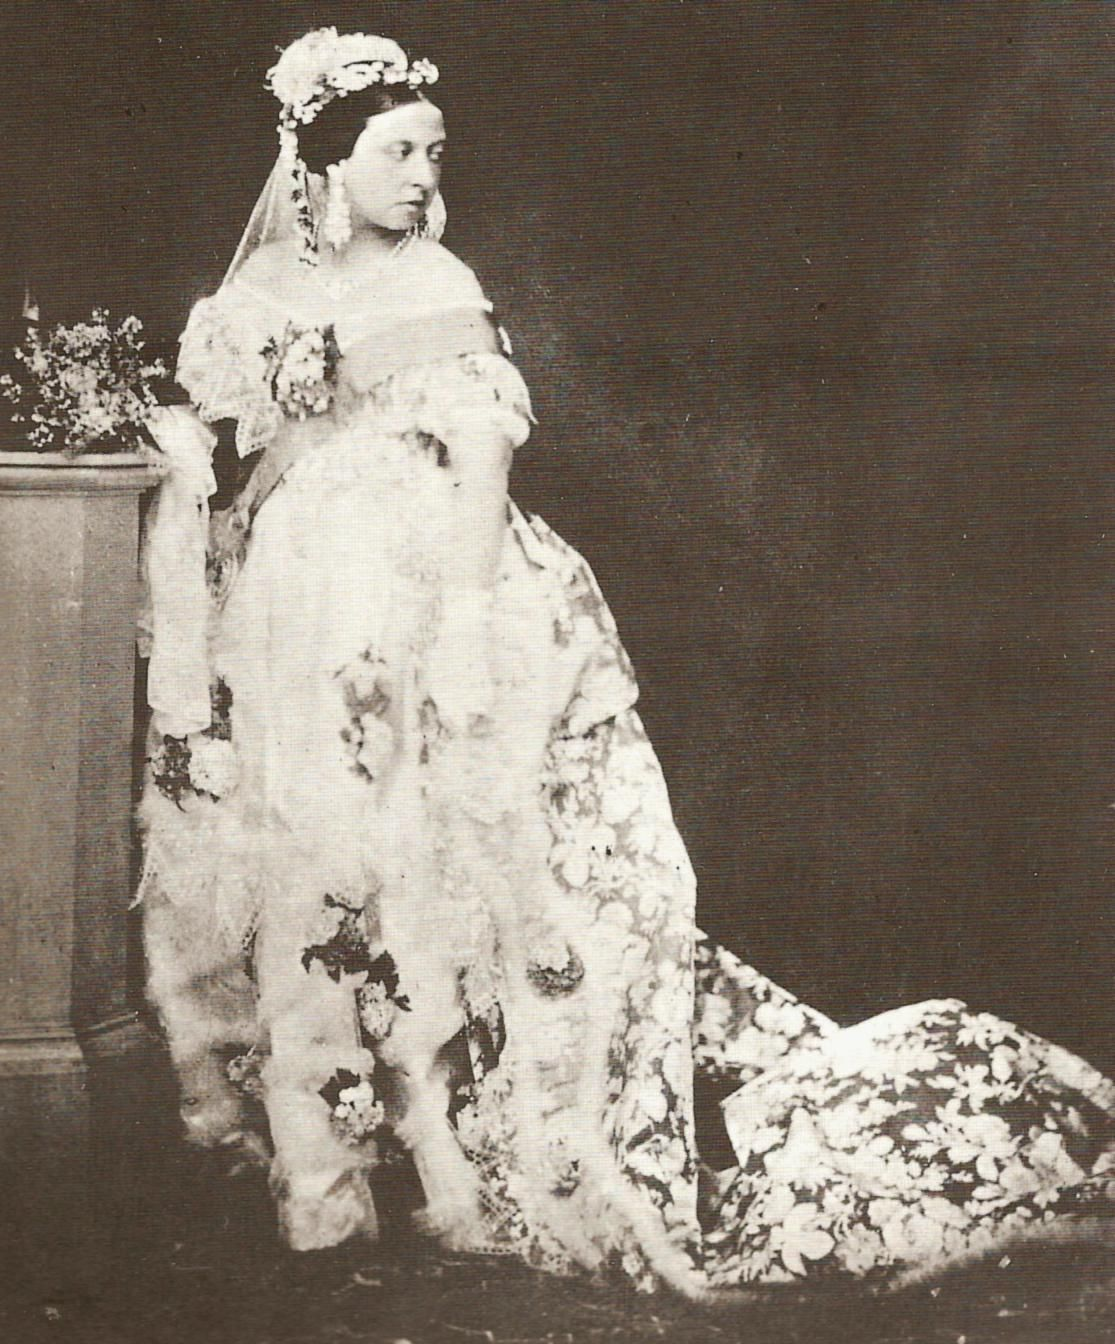 White Wedding Dress Queen Victoria: THE HUMBLE WEDDING GOWN White Is The Accepted Traditional